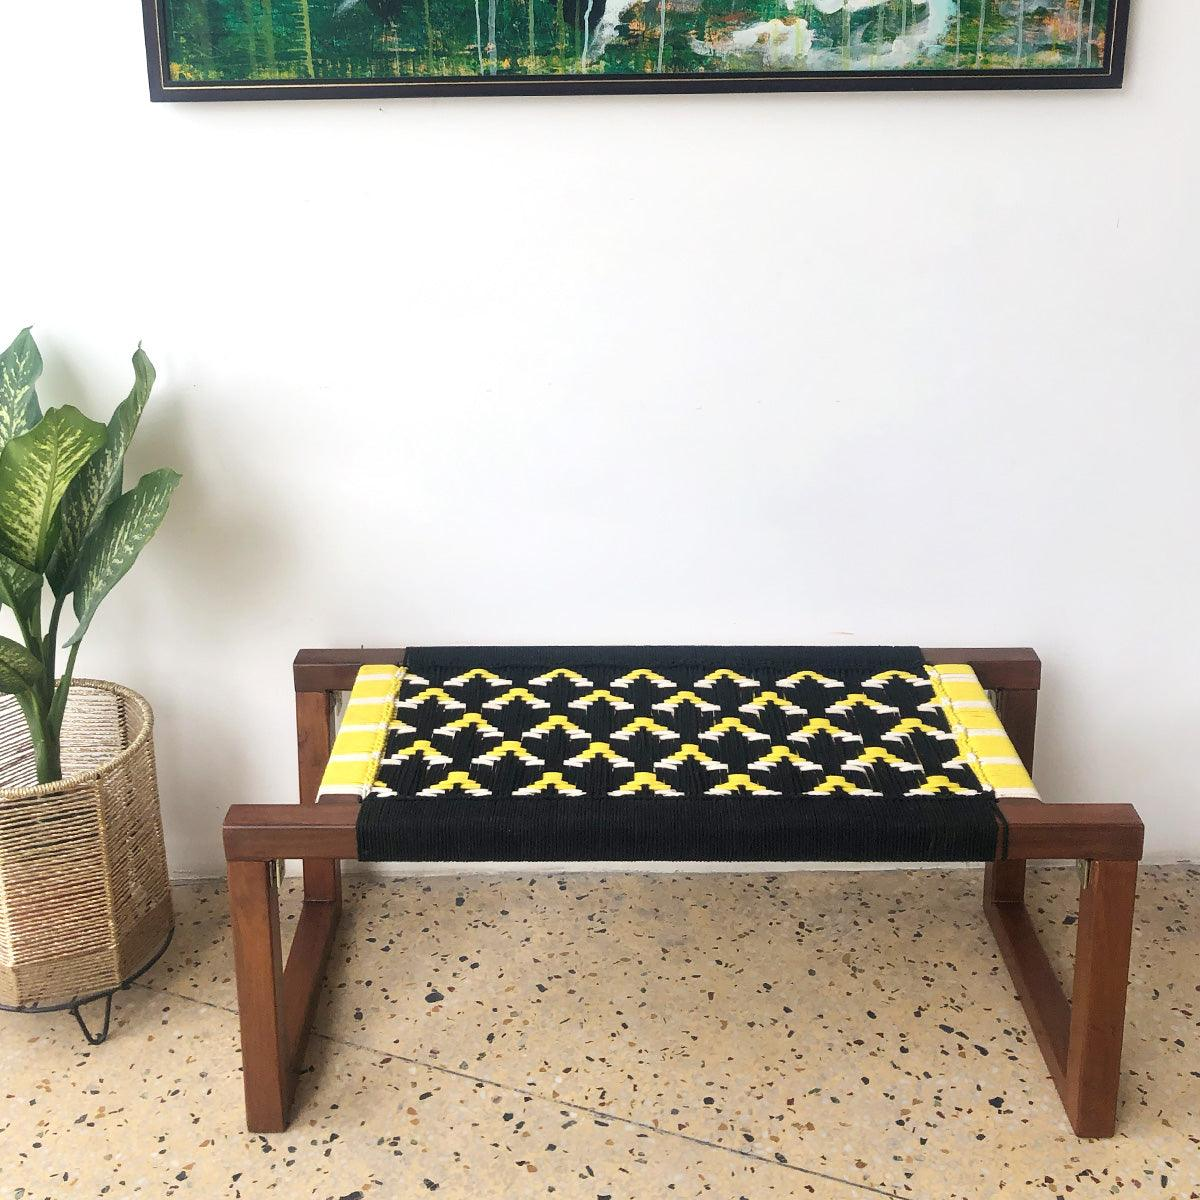 Busy Bee Recycled Cotton Wooden Bench